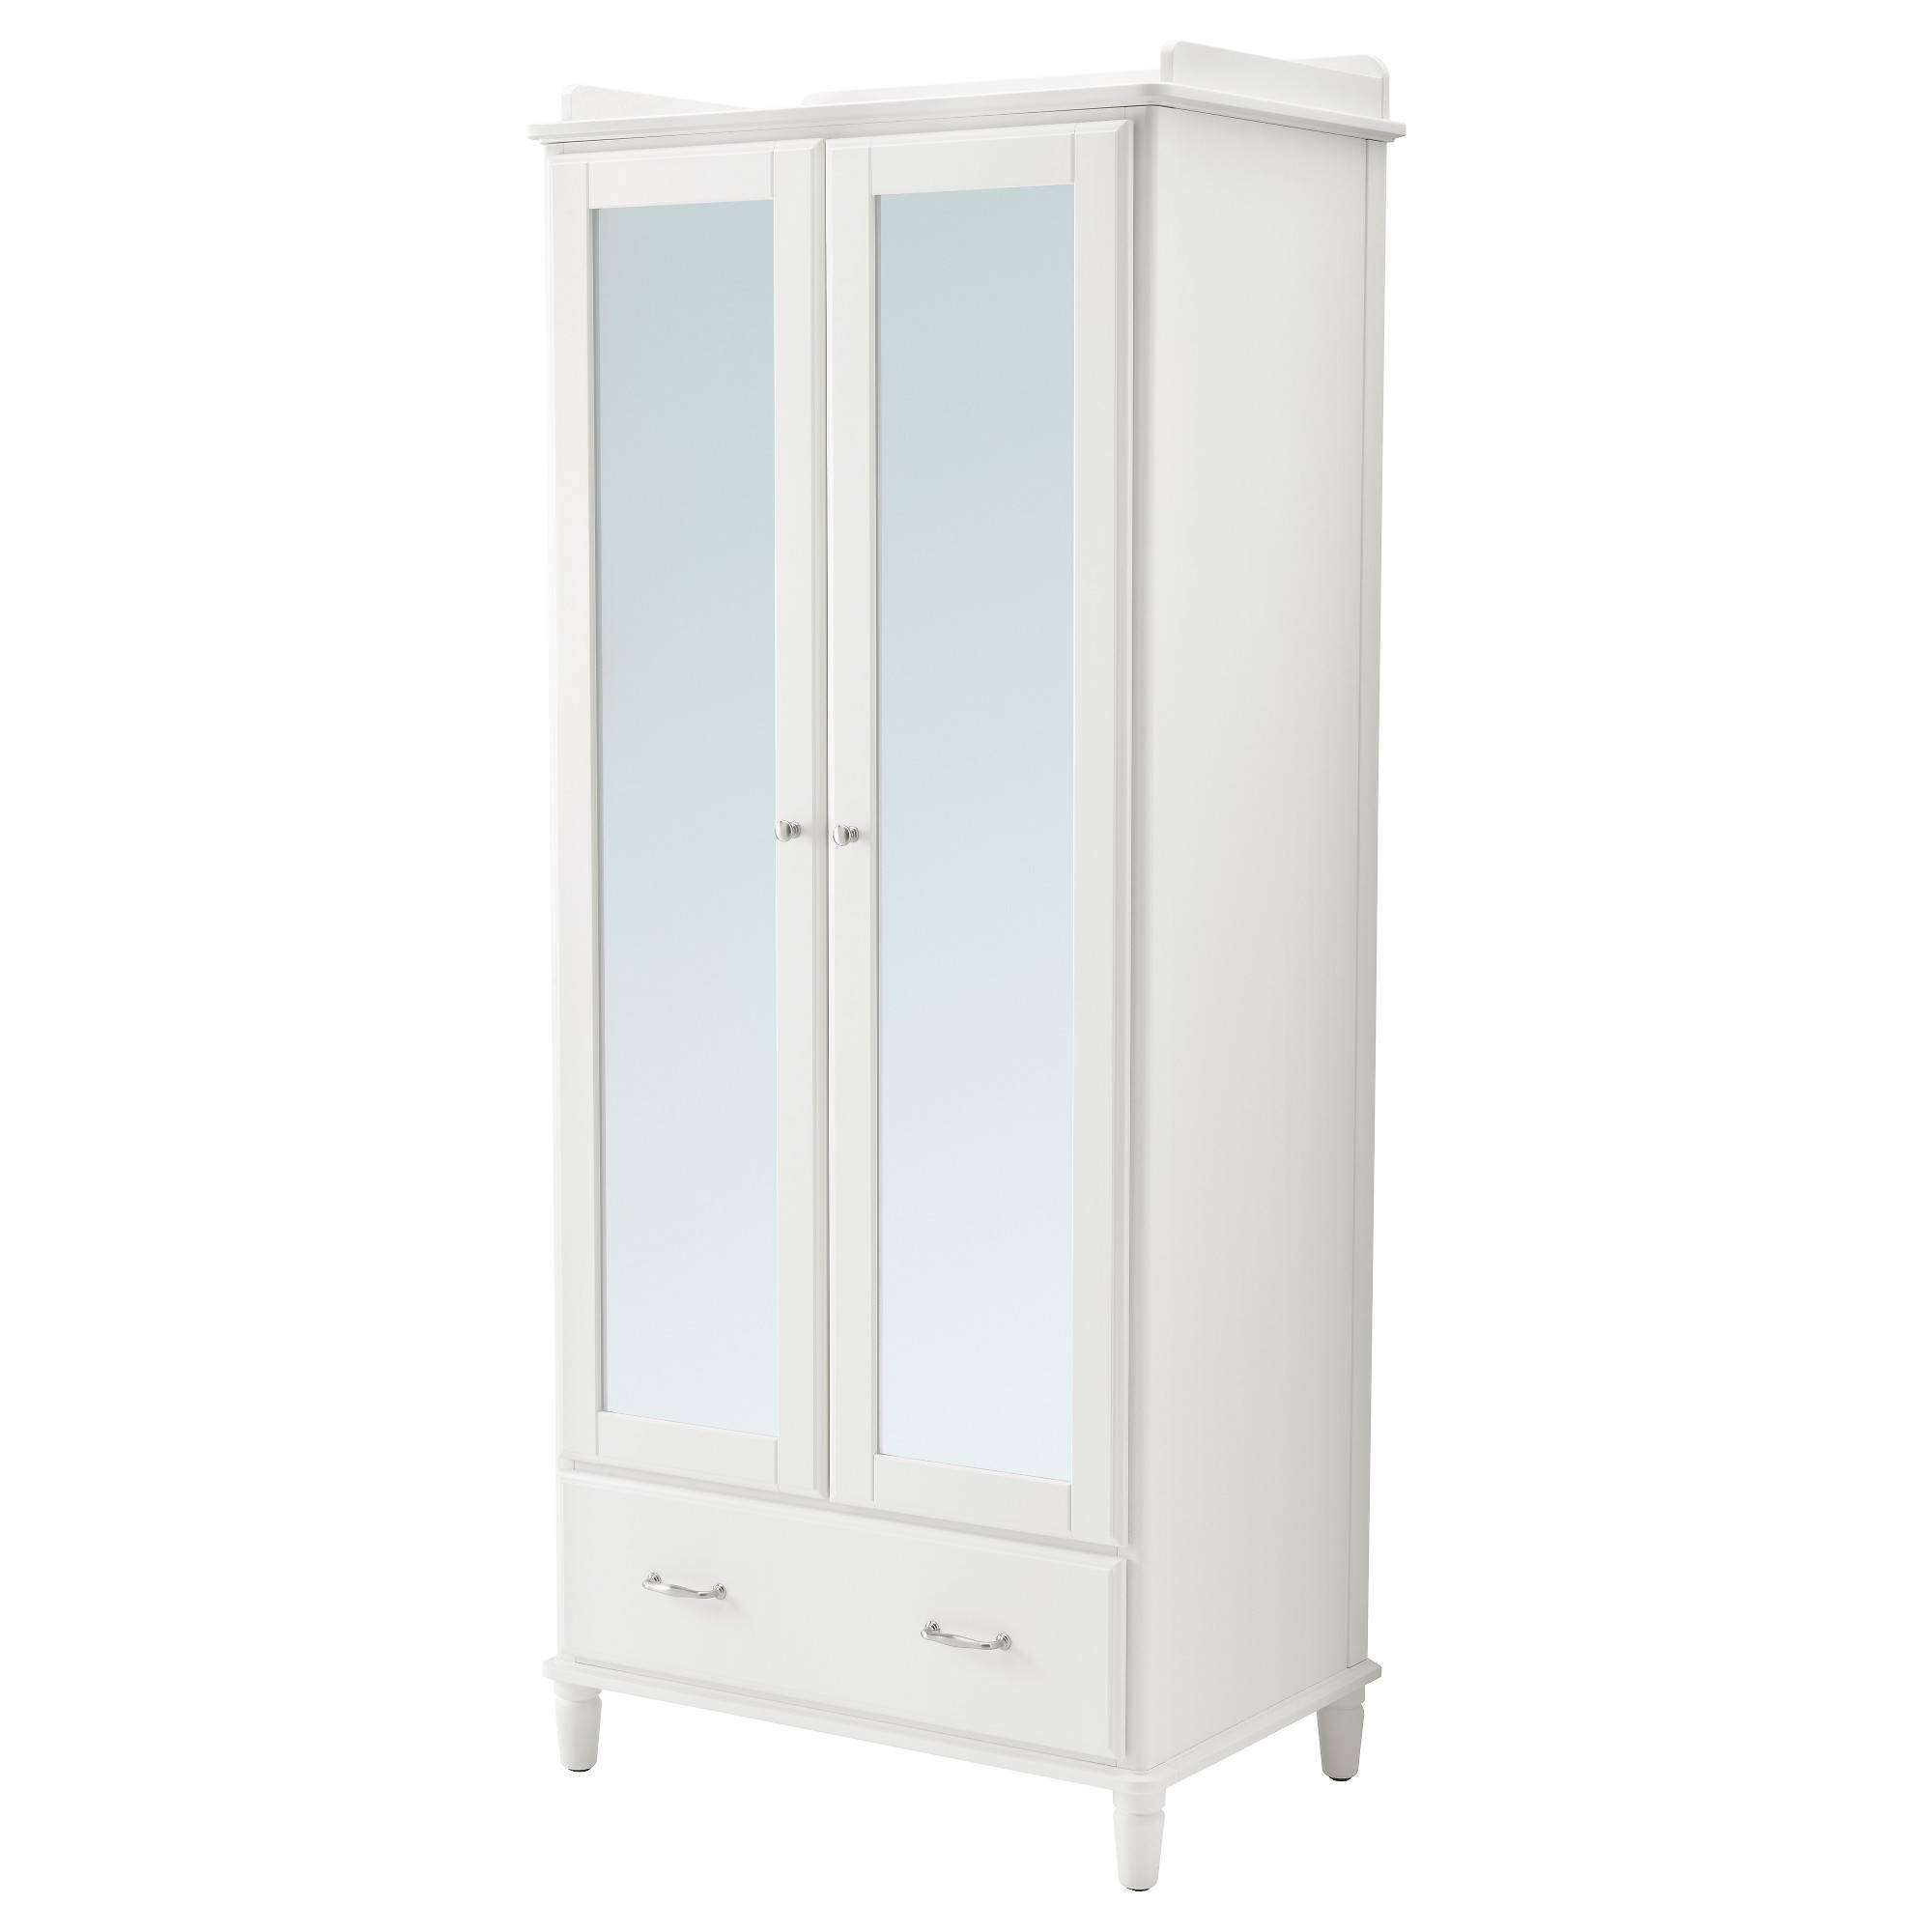 Wardrobes | Ikea in White Double Wardrobes With Drawers (Image 14 of 15)